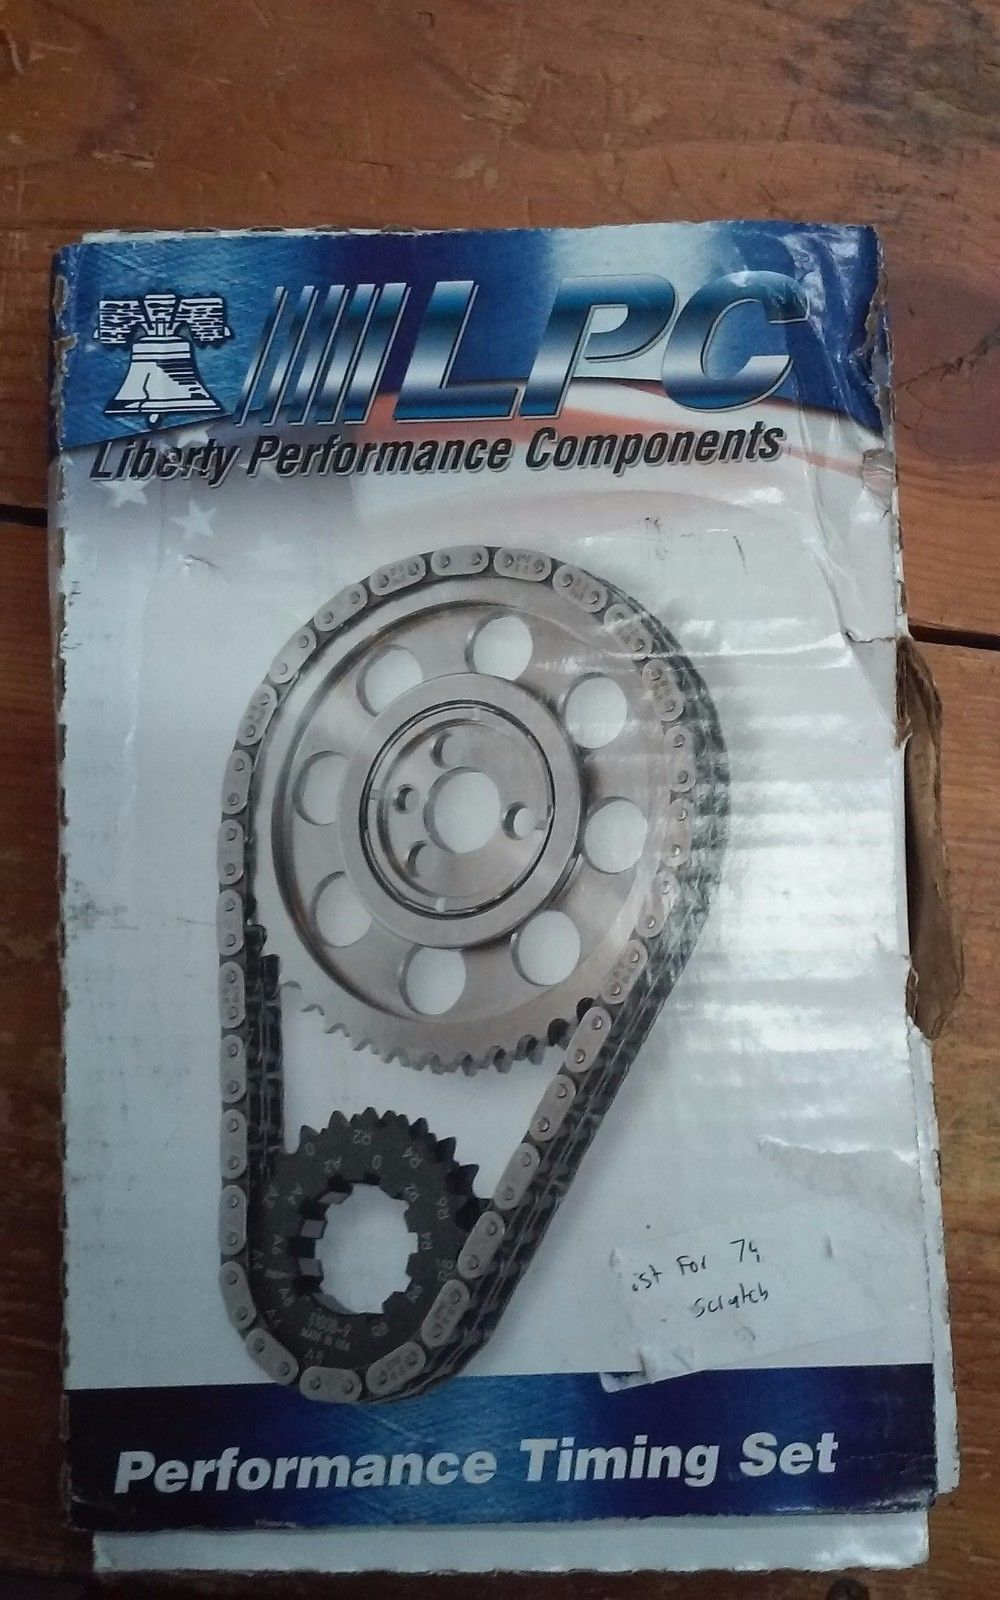 Performance Timing Set by LPC. Model LT98125. Like new! Original Authentic!